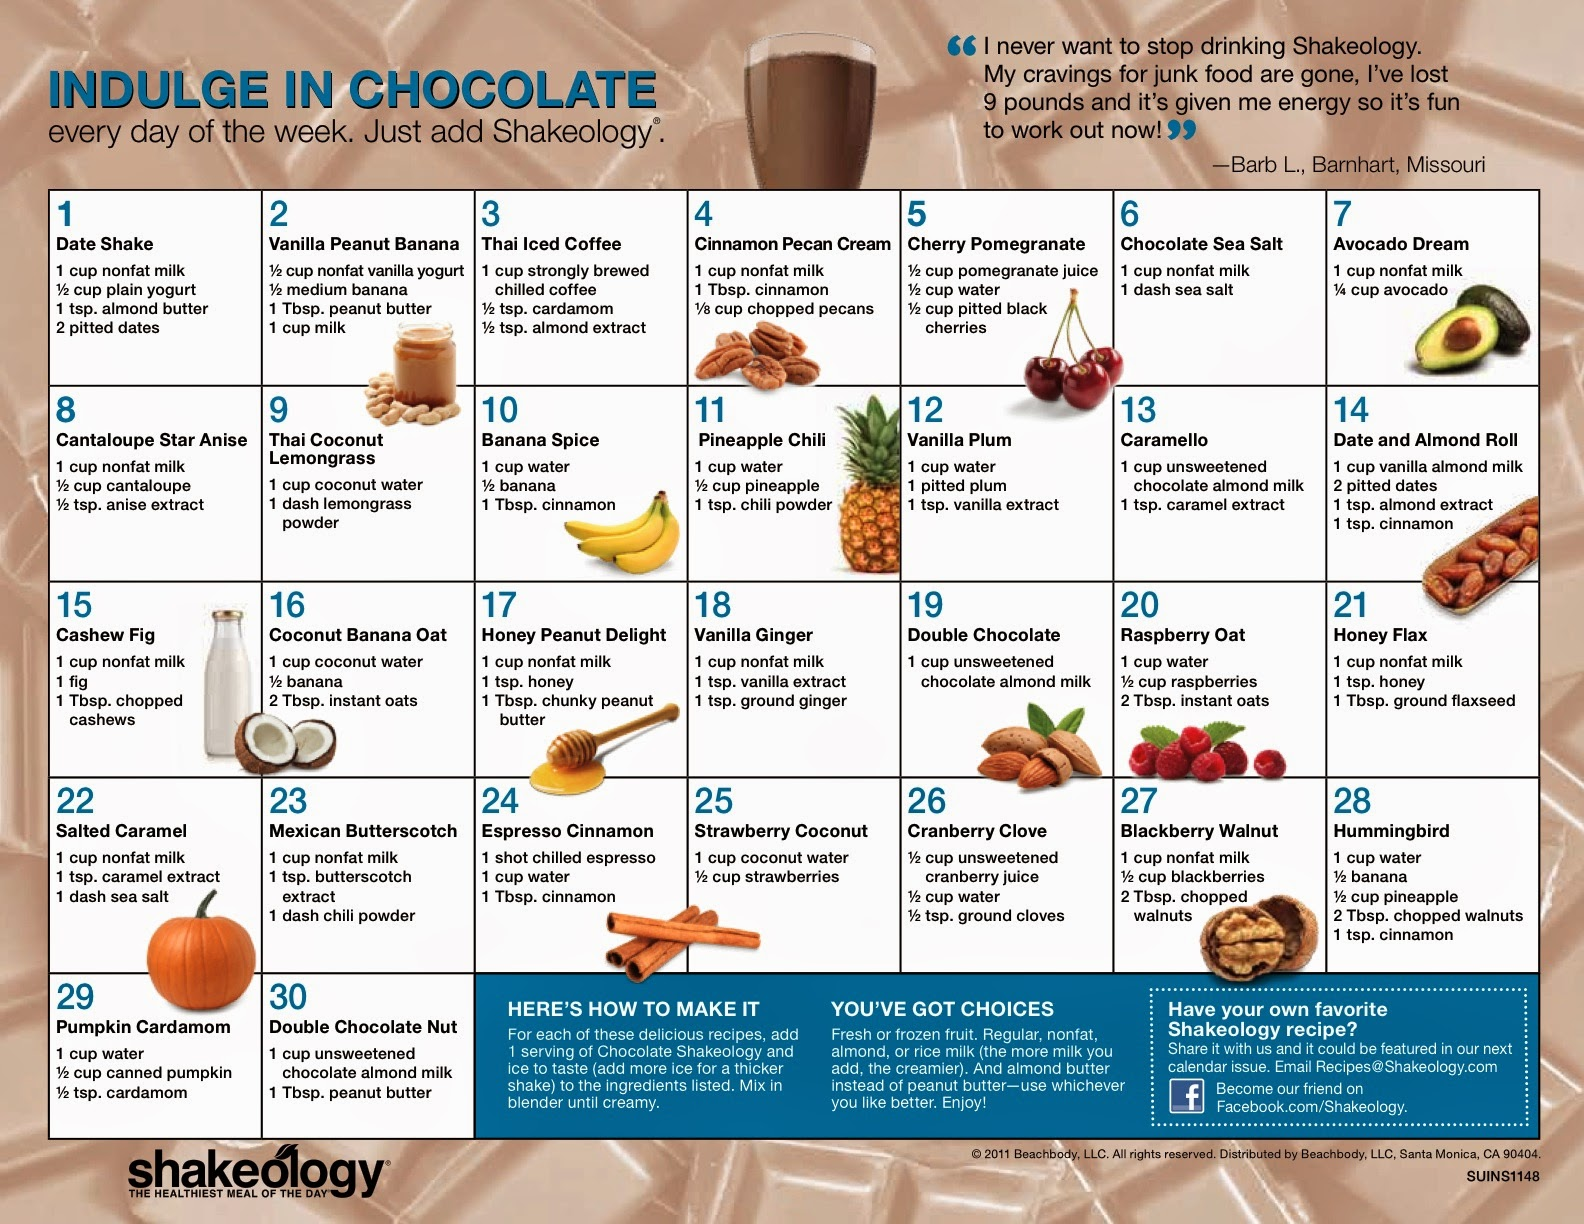 Double Chocolate Peanut Butter Shakeology - Chocolate Shakeology Recipes - Shakeology Samples